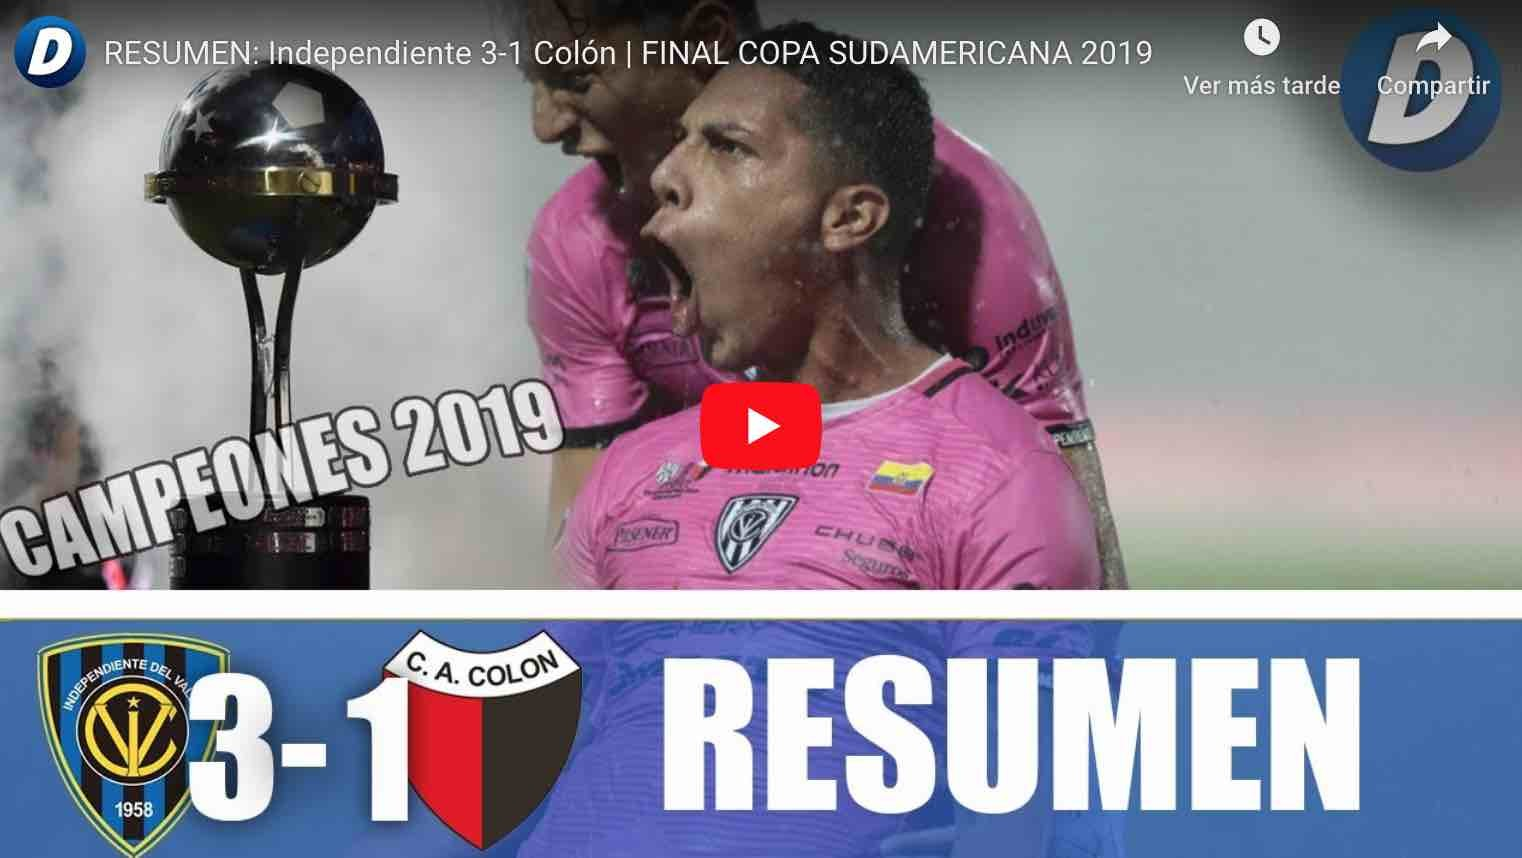 Photo of Video: RESUMEN: Independiente 3-1 Colón | FINAL COPA SUDAMERICANA 2019